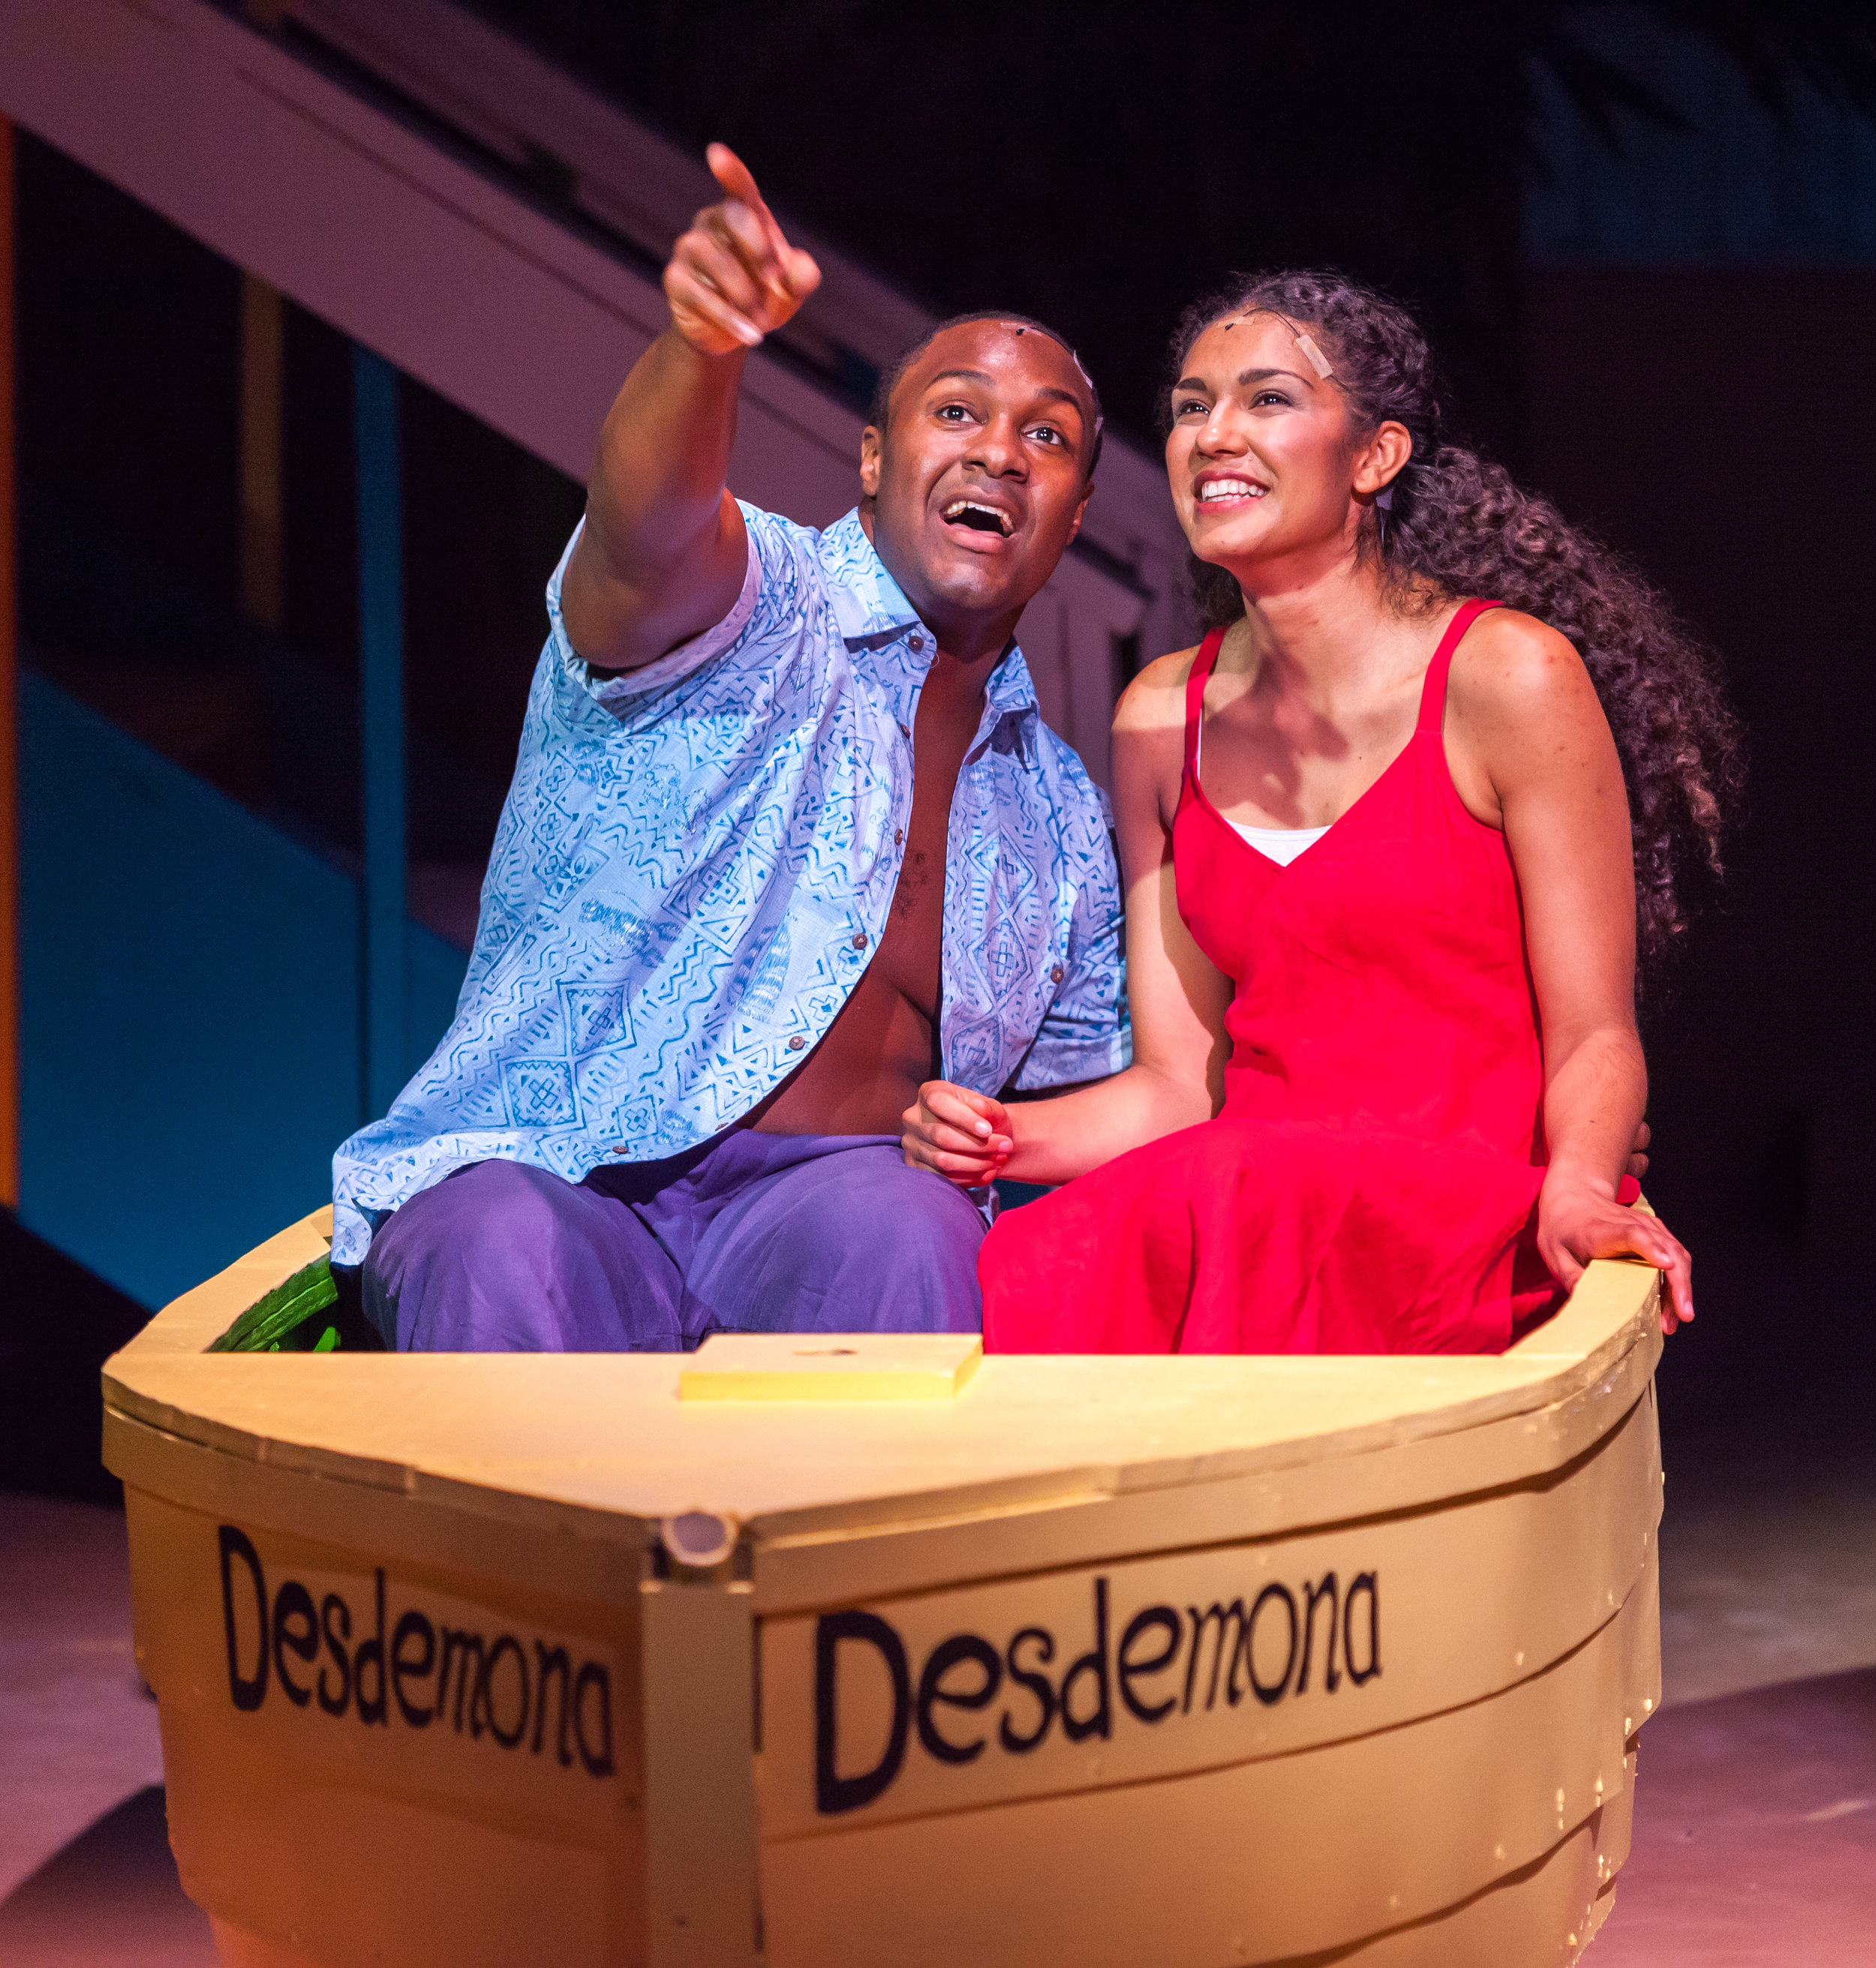 JAMAICA, Book by Yip Harburg and Fred Saidy, Lyrics by Yip Harburg, and Music by Harold Arlen; Directed & Choreographed by Rajendra Ramoon Maharaj; Photos by Ethimo Photo; New Freedom Theatre